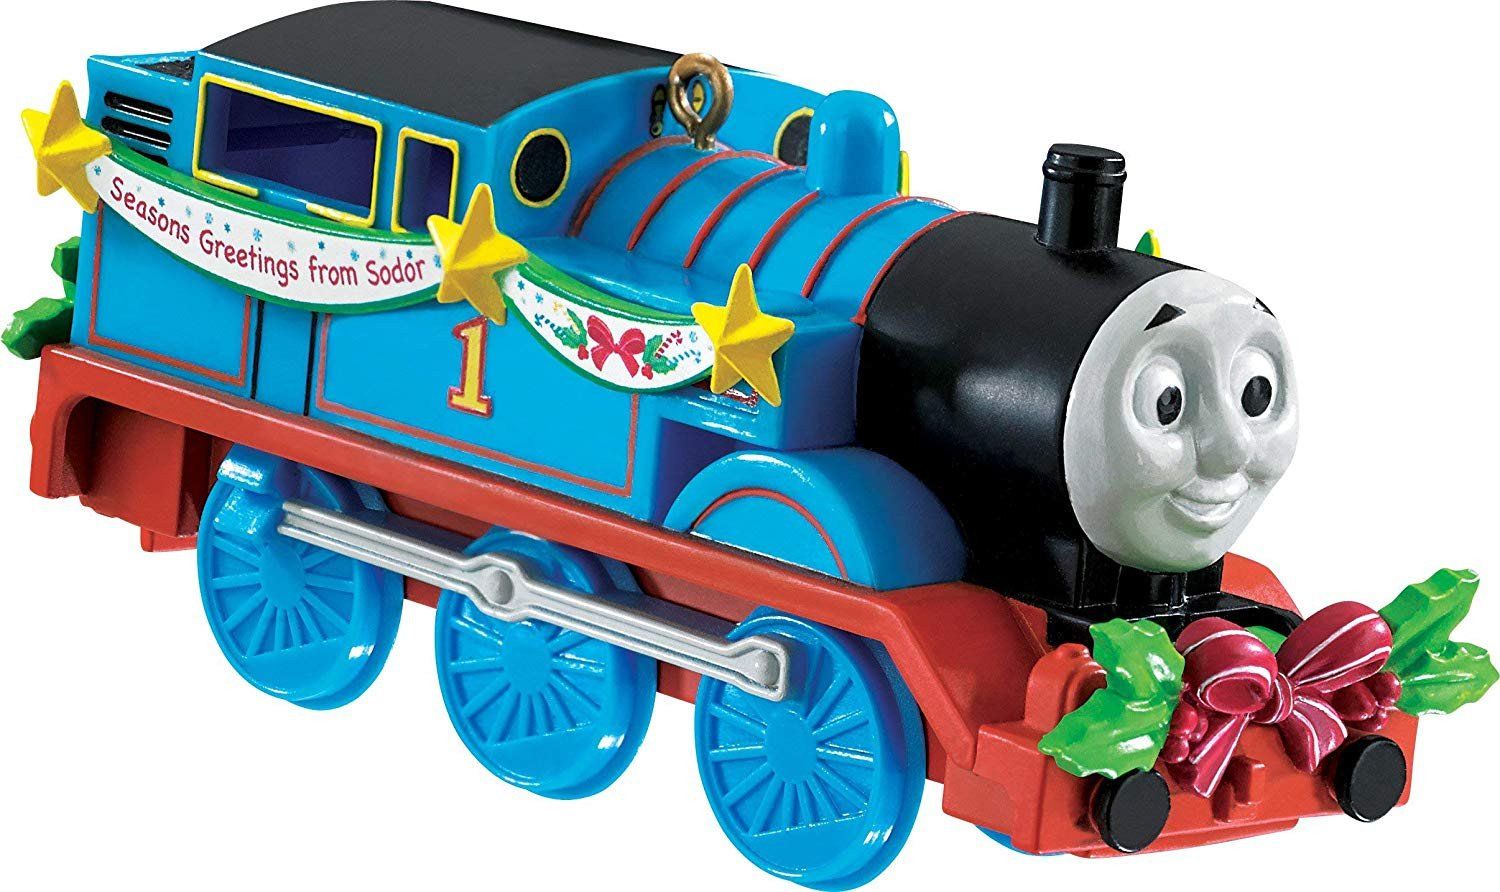 Thomas the Train Bedroom Decor Inspirational Thomas & Friends Carlton ornament